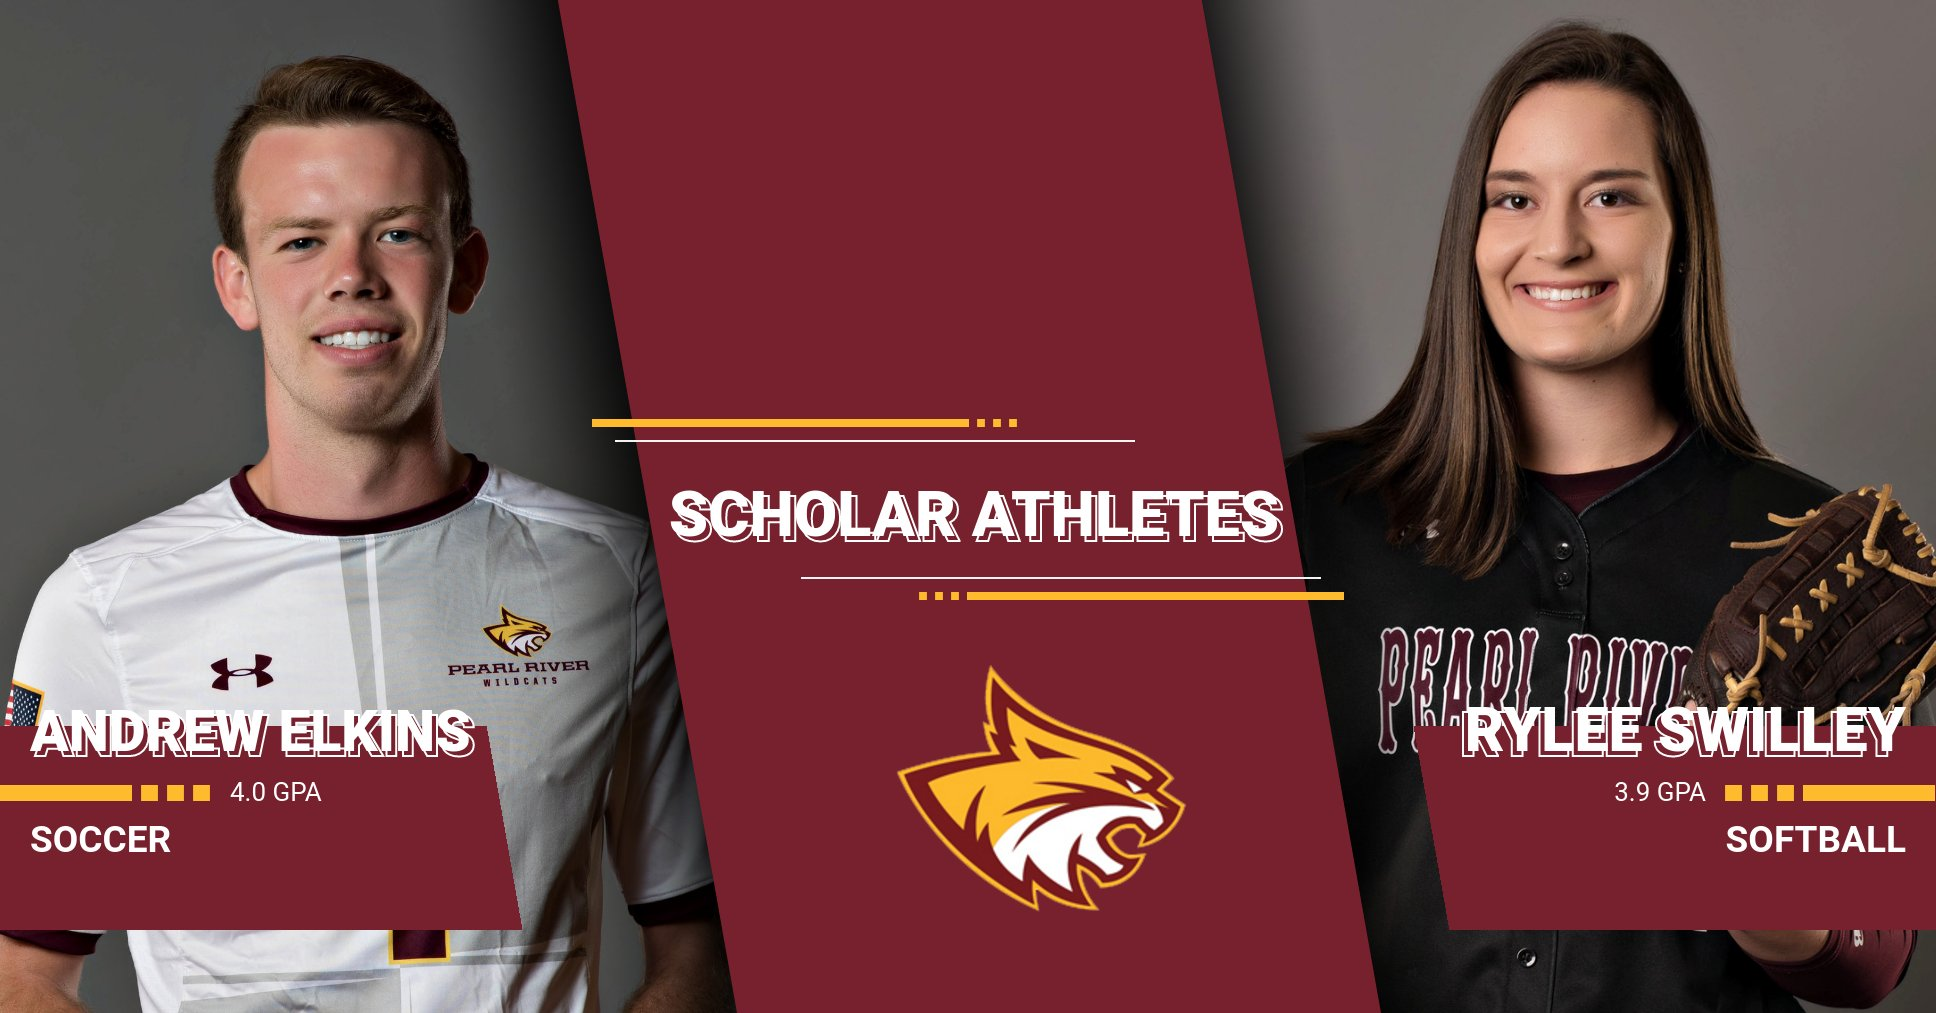 Rylee Swilley, Andrew Elkins named Pearl River scholar athletes